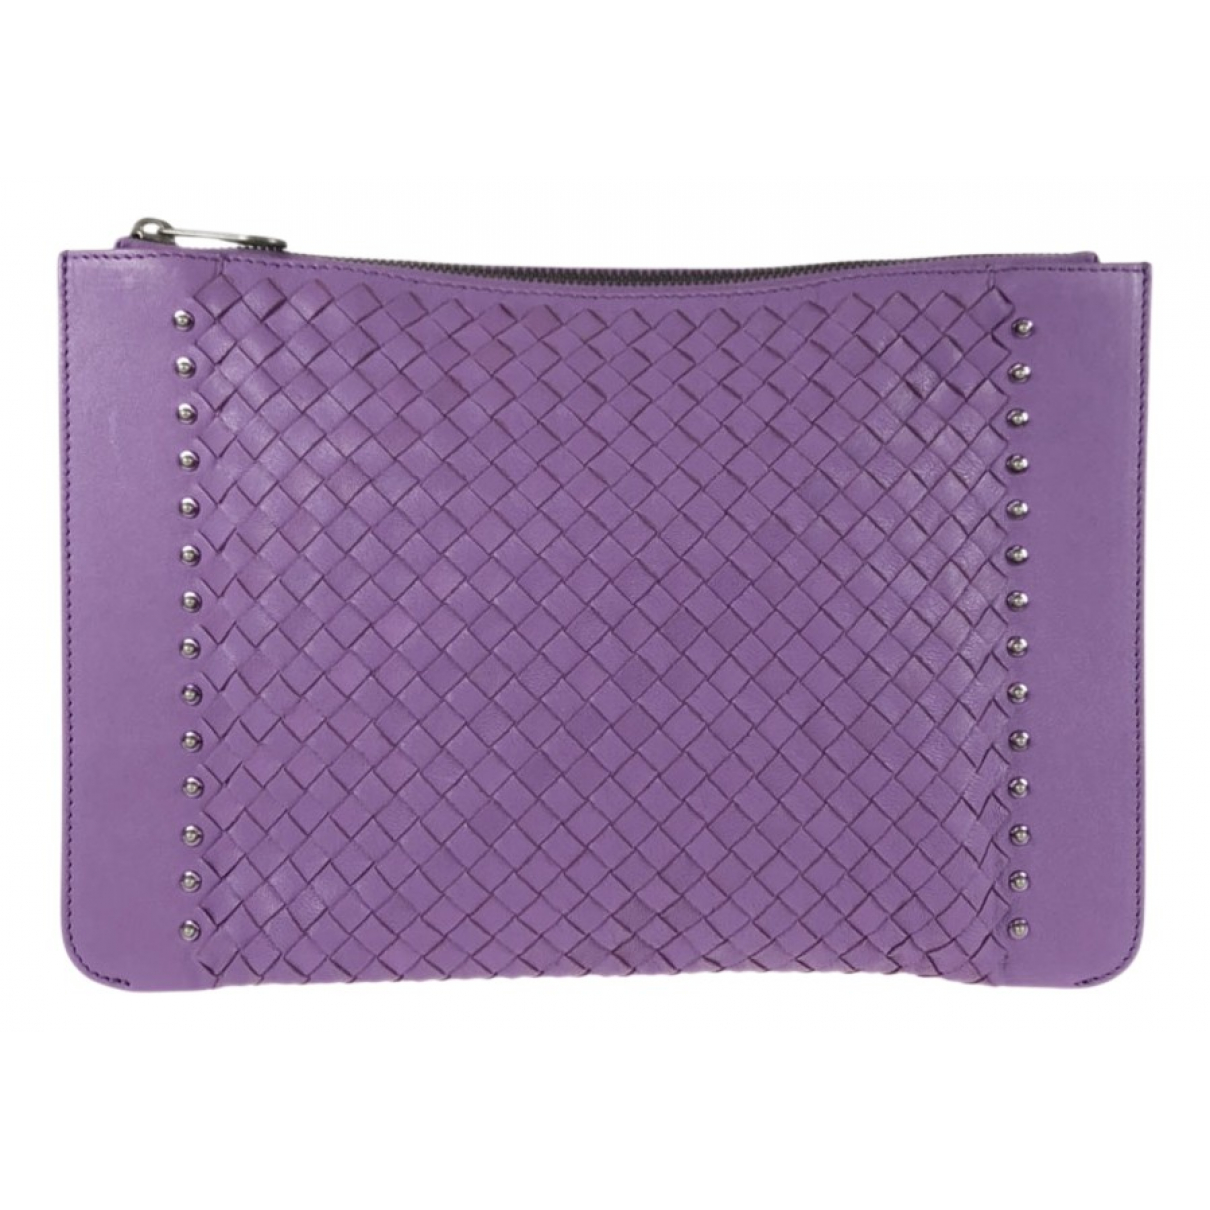 Bottega Veneta N Purple Leather Clutch bag for Women N